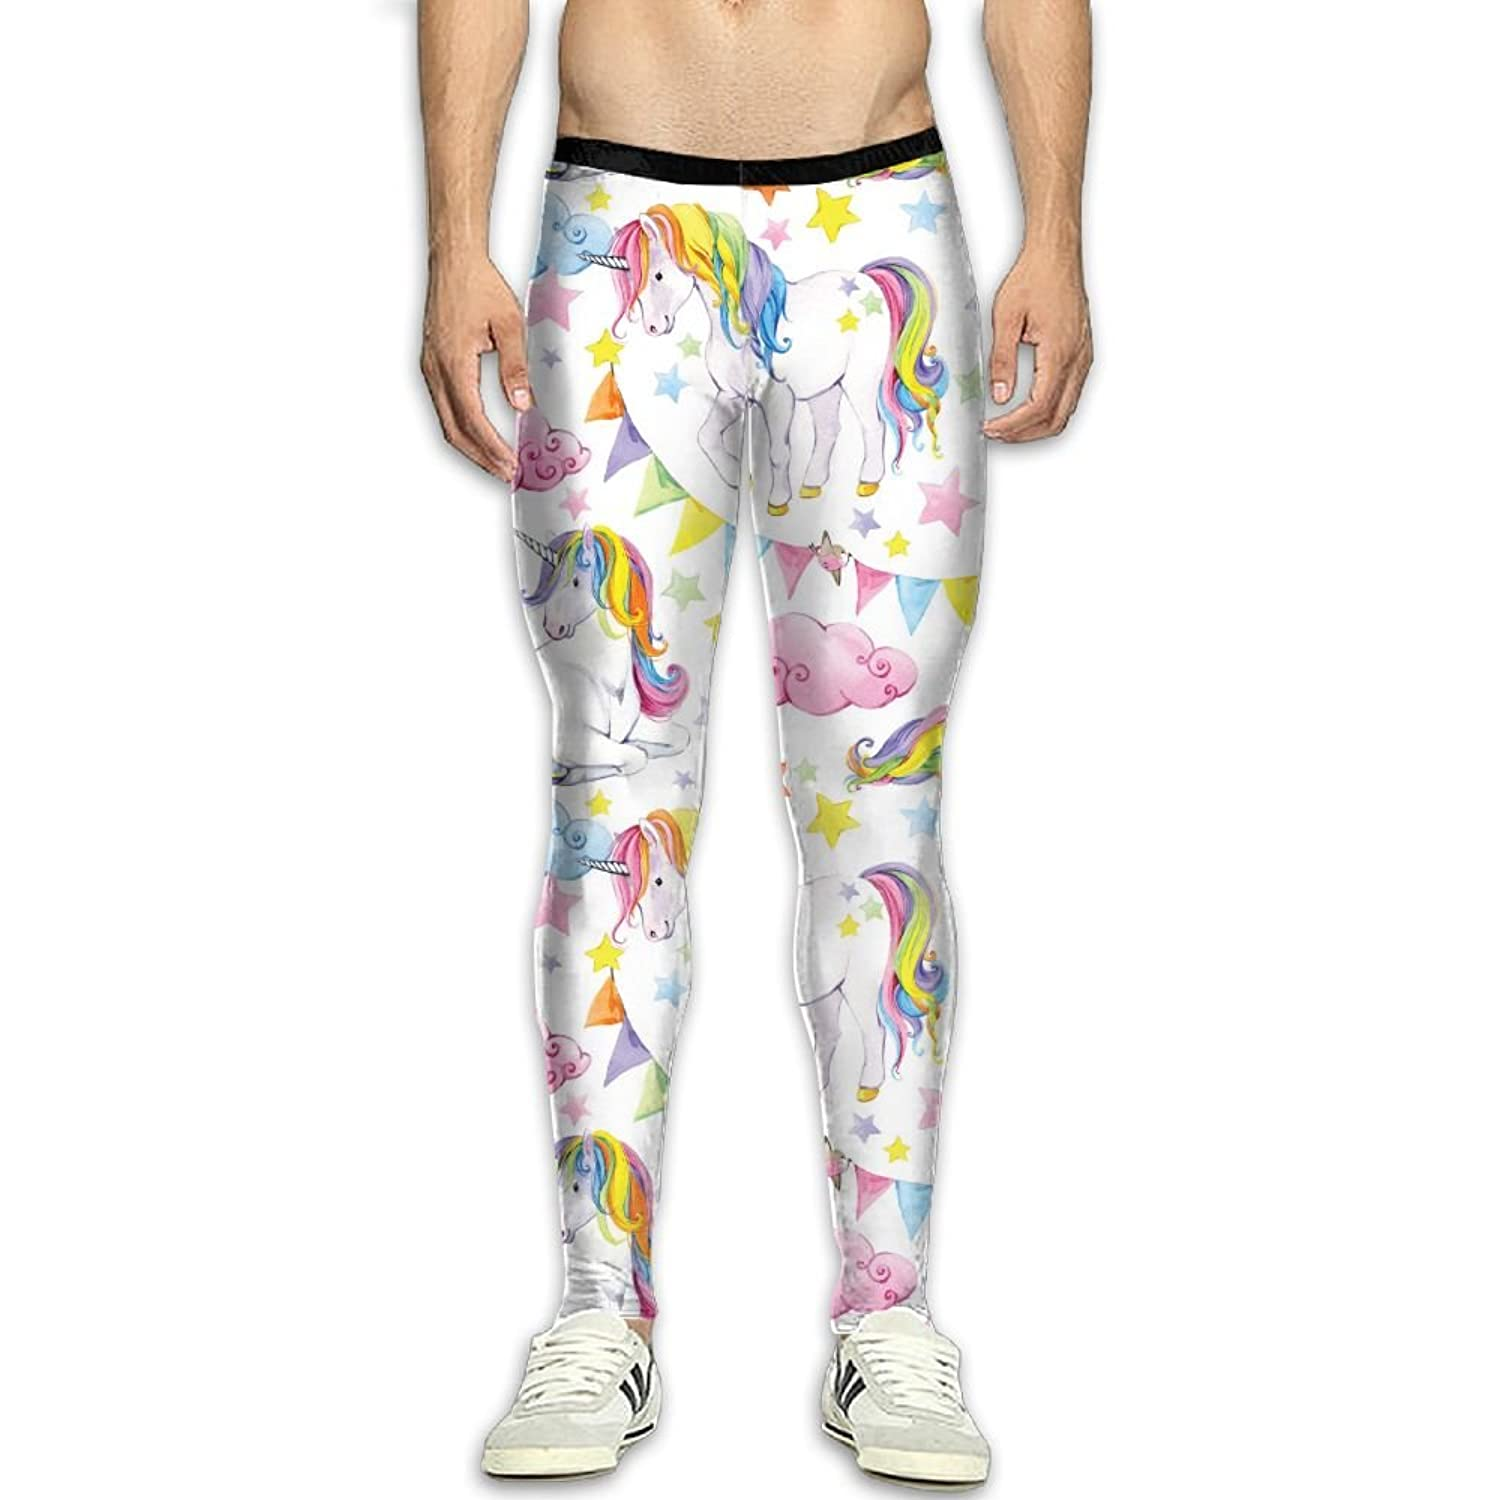 a11bdca83afe1 JJP1CO Men's Compression Pants Rainbow Unicorn 3D Print Baselayer Cool Dry  Sports Thermal Tights Running Fitness